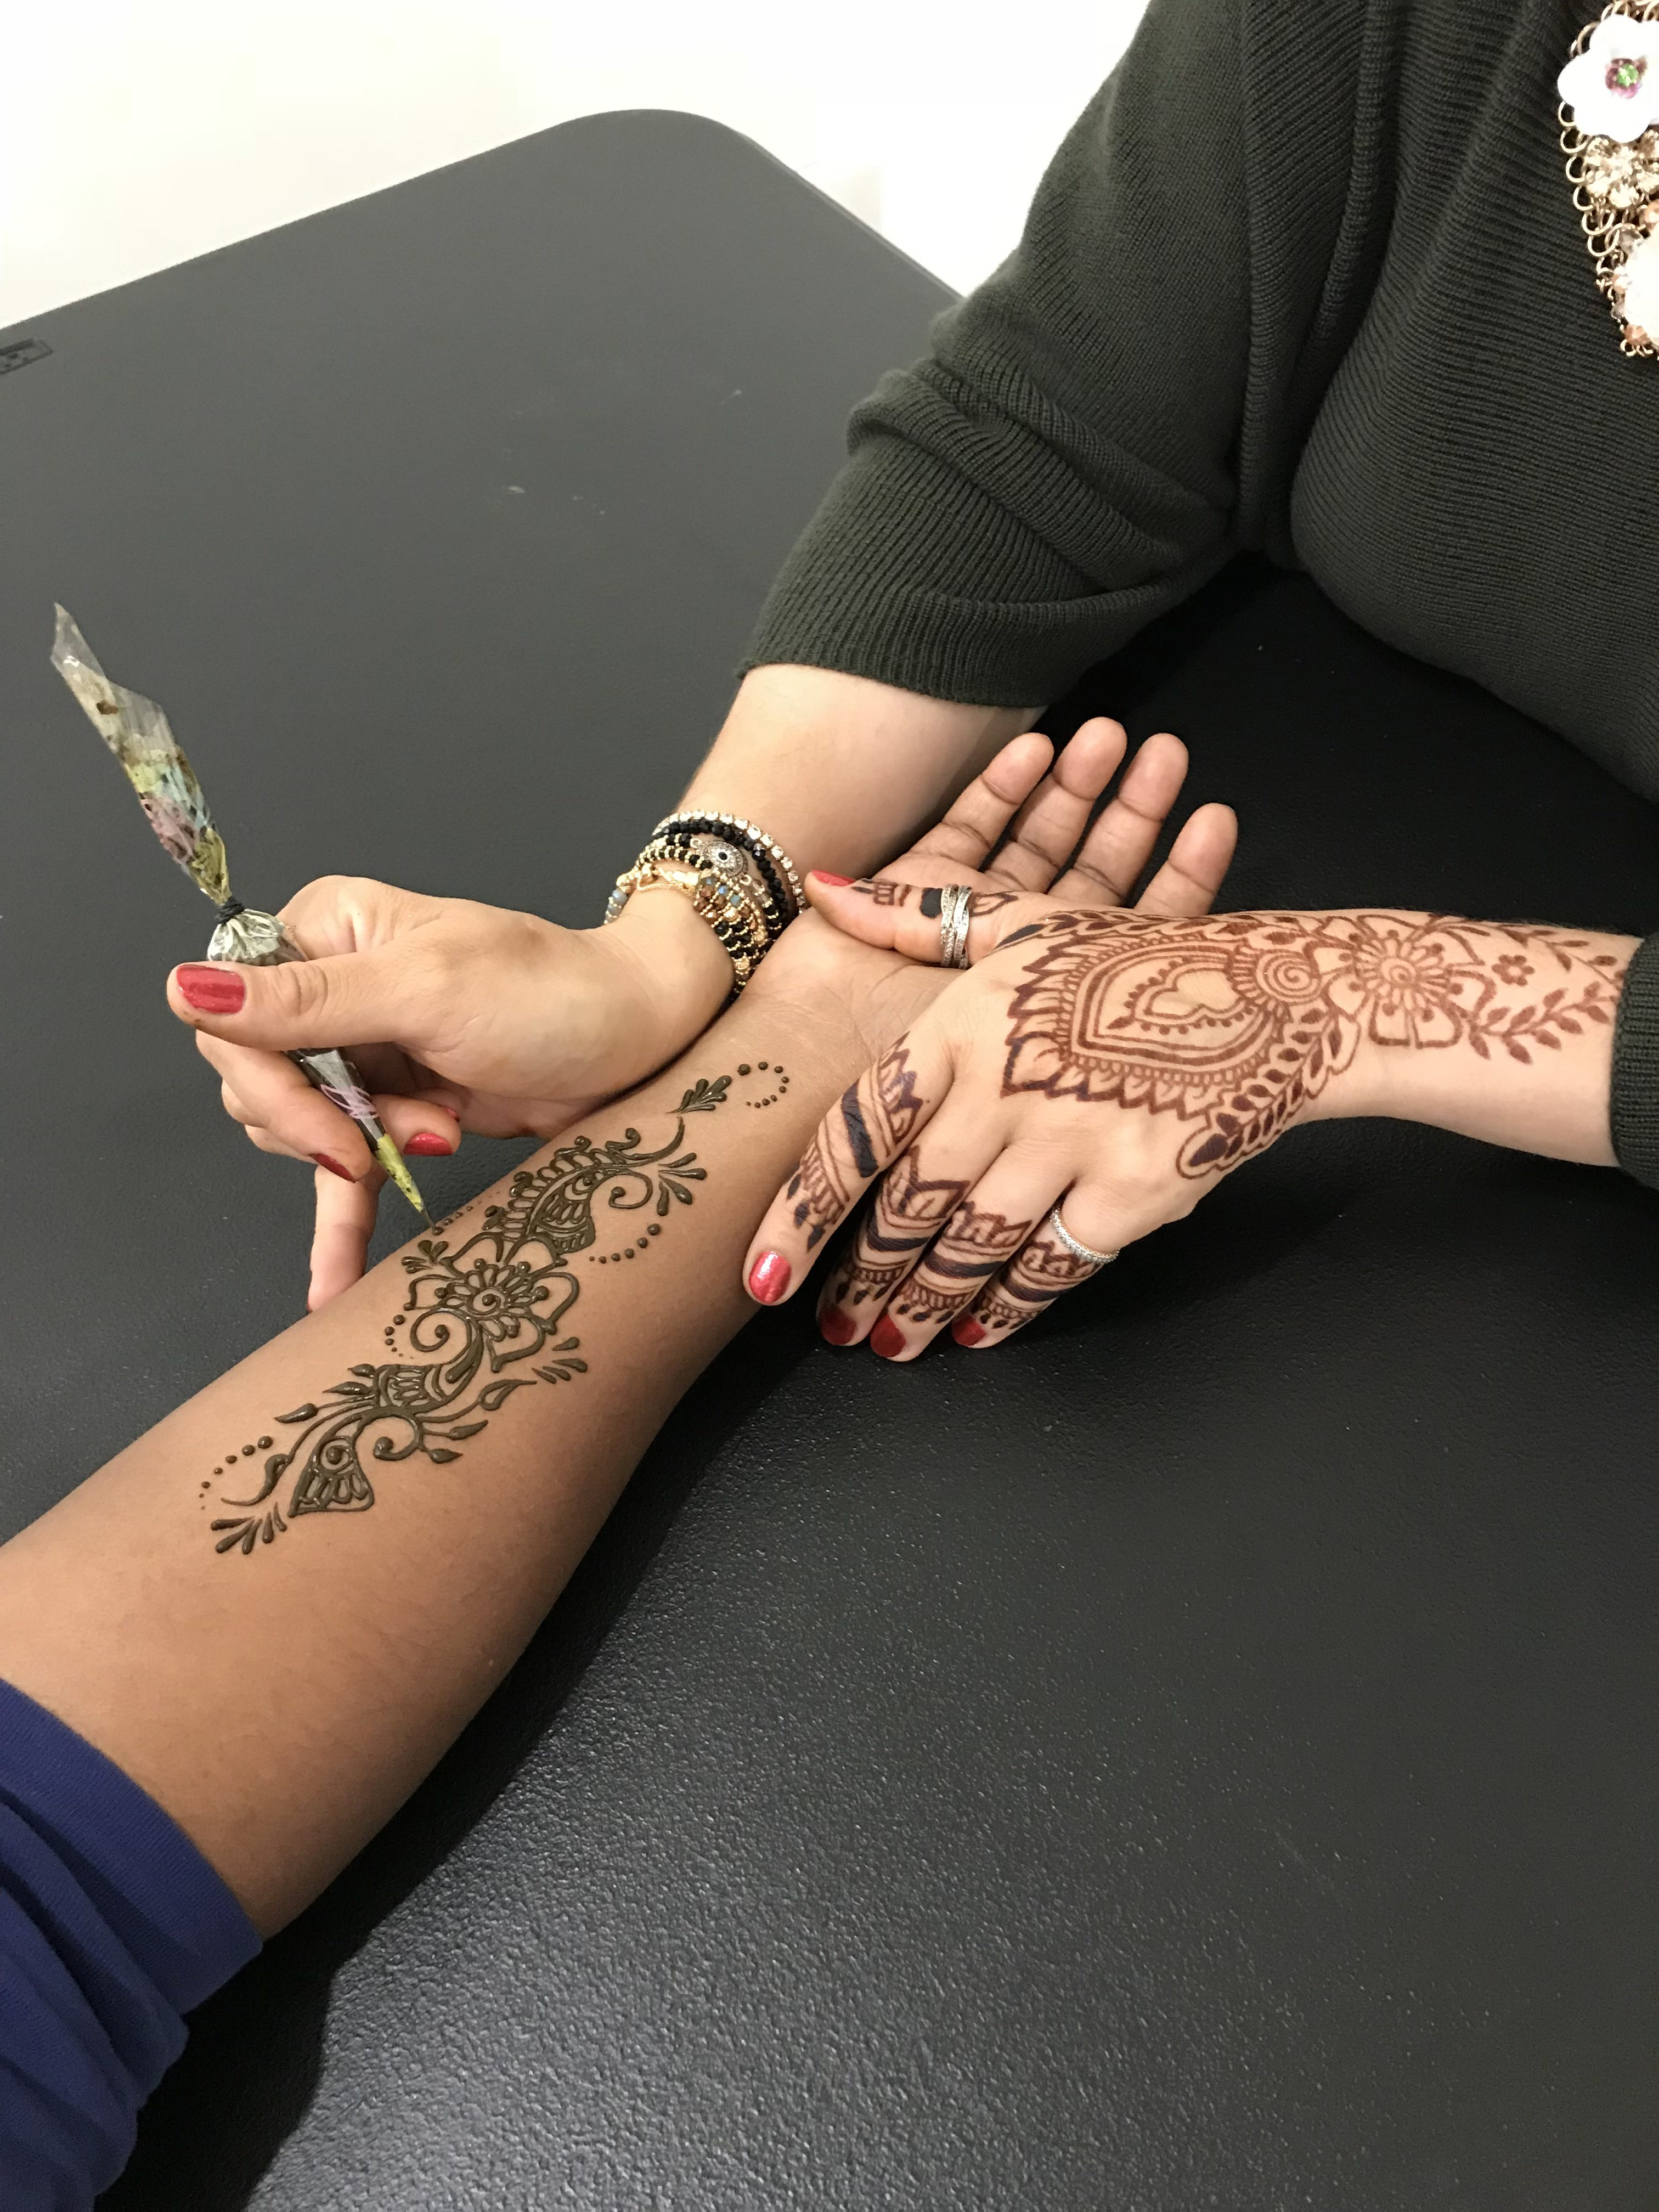 Save 10 On Our Henna Sooq Products Henna Blog Spot